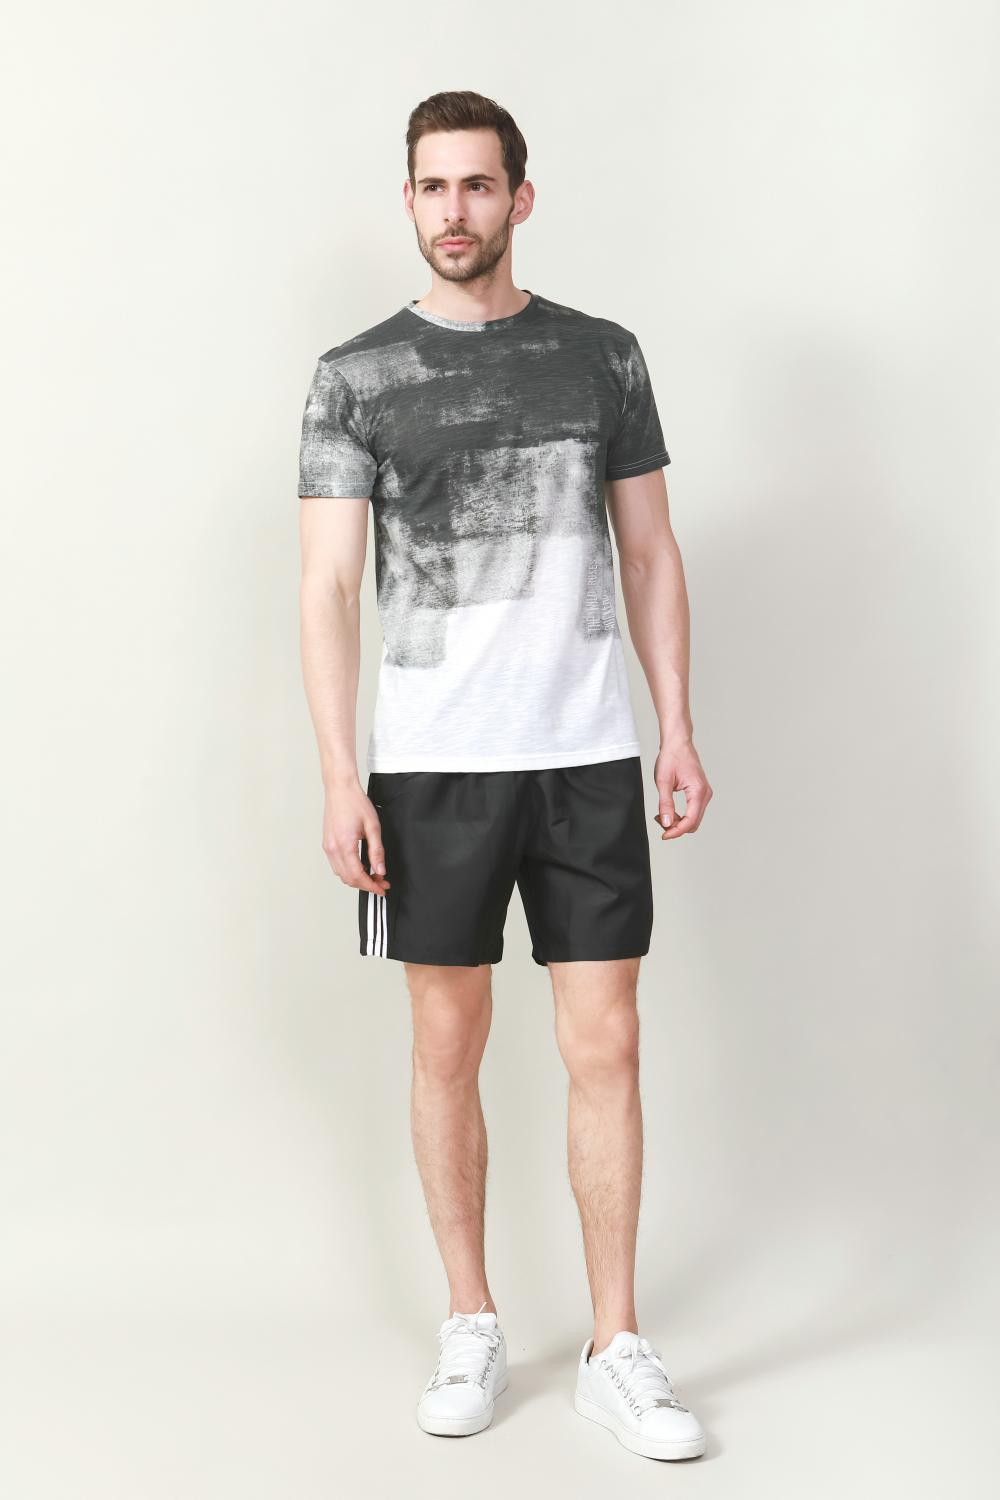 Men's fading print t-shirt